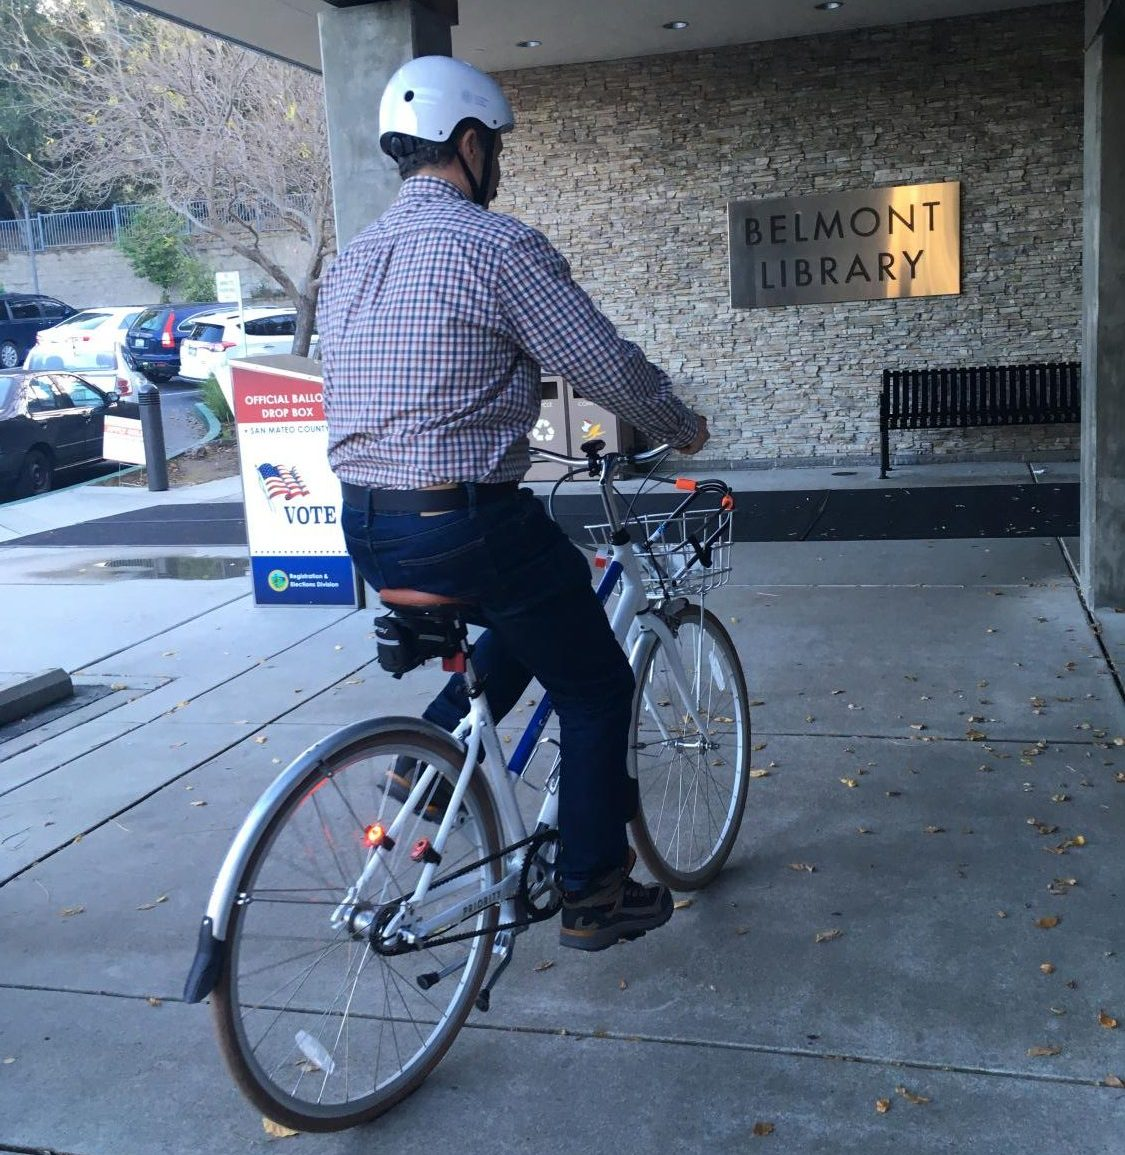 A library member rides down to the Belmont library to return his bike before closing.